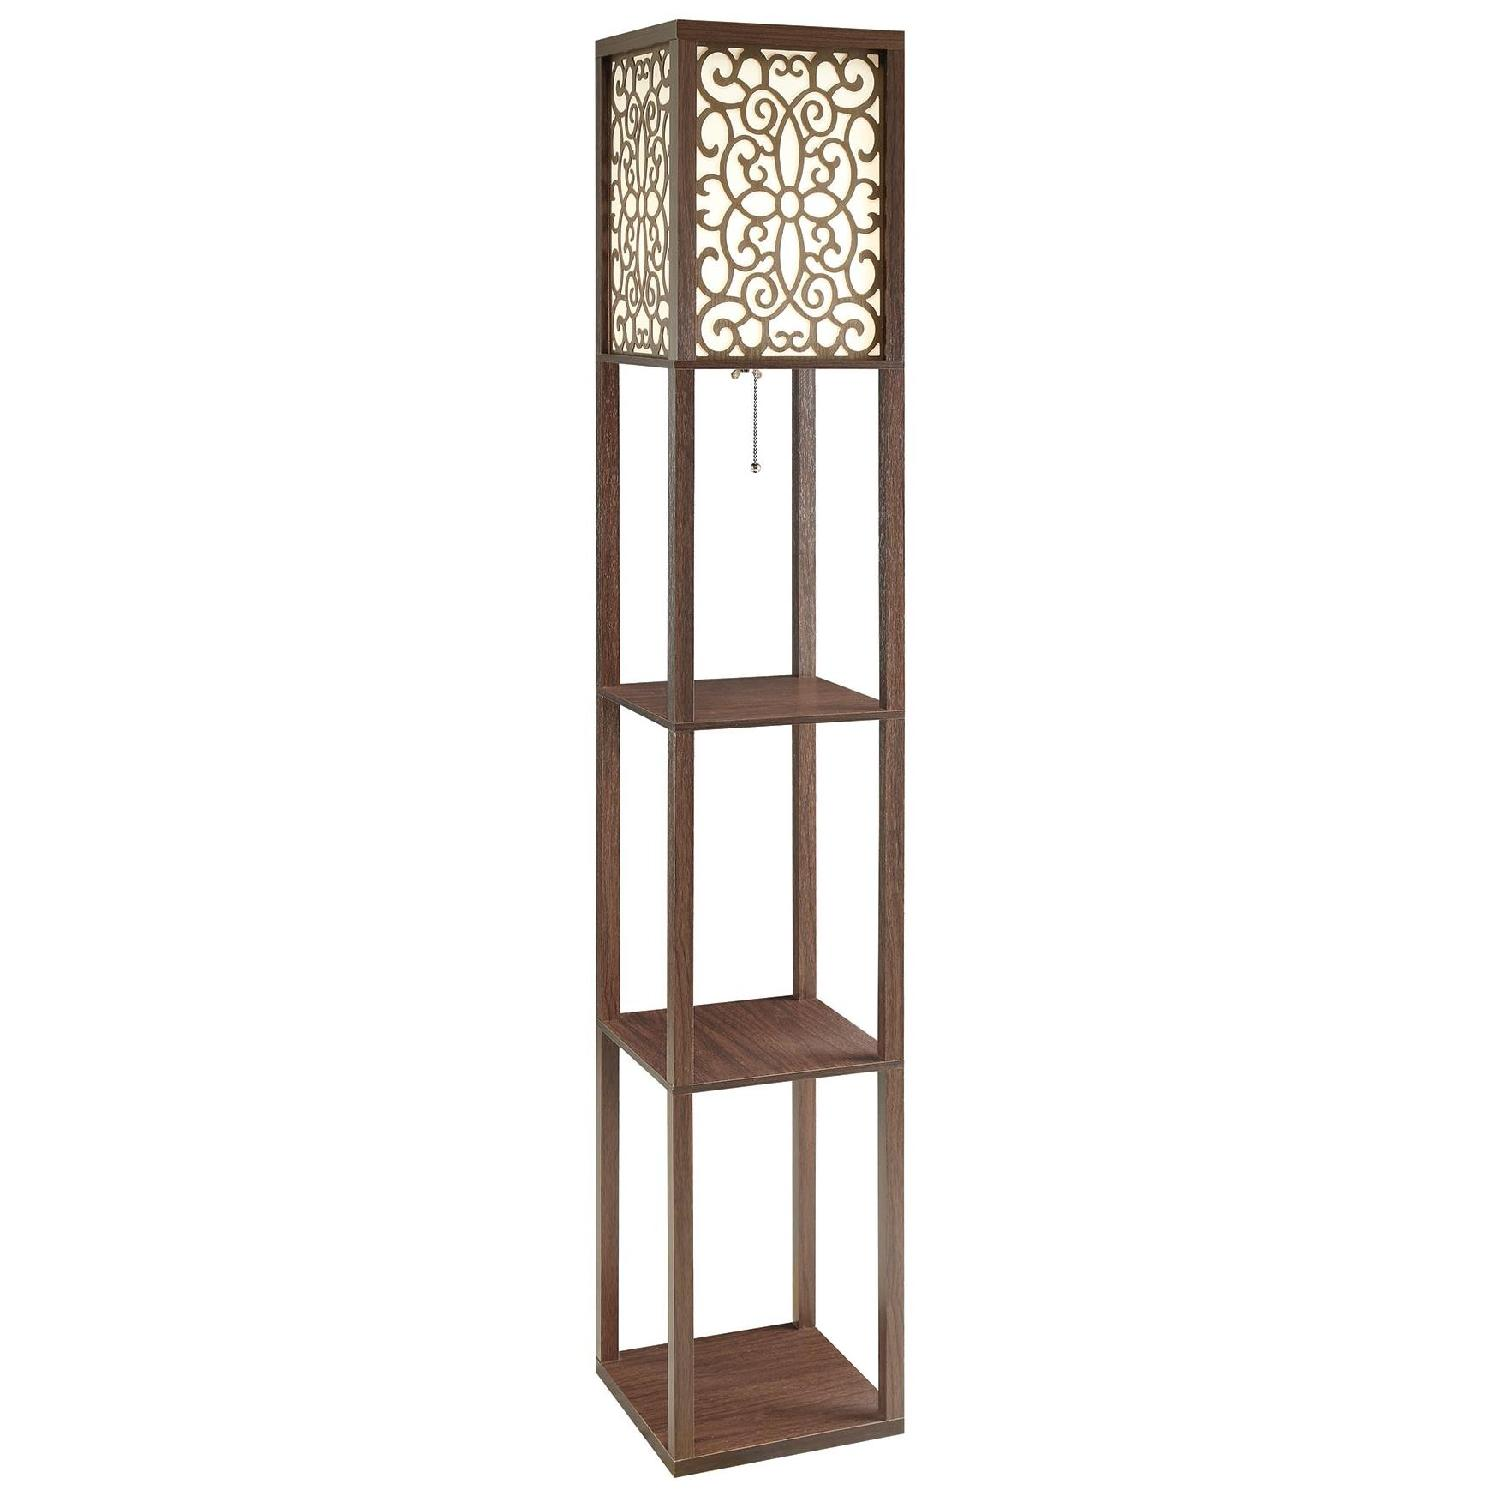 Floor Lamp w/ Flower Pattern On Shade & Three-Tiered Shelves